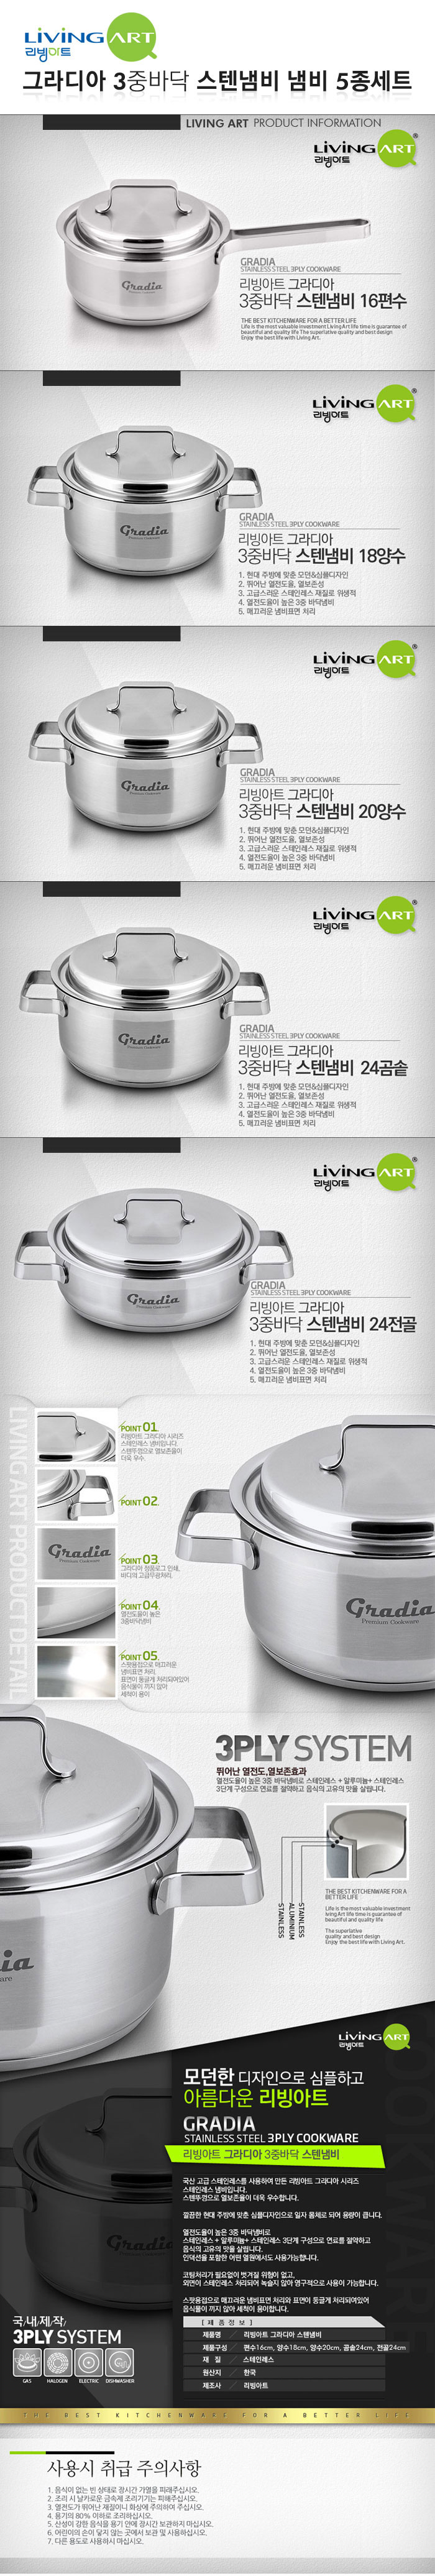 [ etc ] Gradia 3Ply Bottom Stainless Pot 5Pcs Set (16 Single Handle +18 Two Handle +20 Two Handle +24 Stew Pot +24 Stew Pot) + Silicone Handle